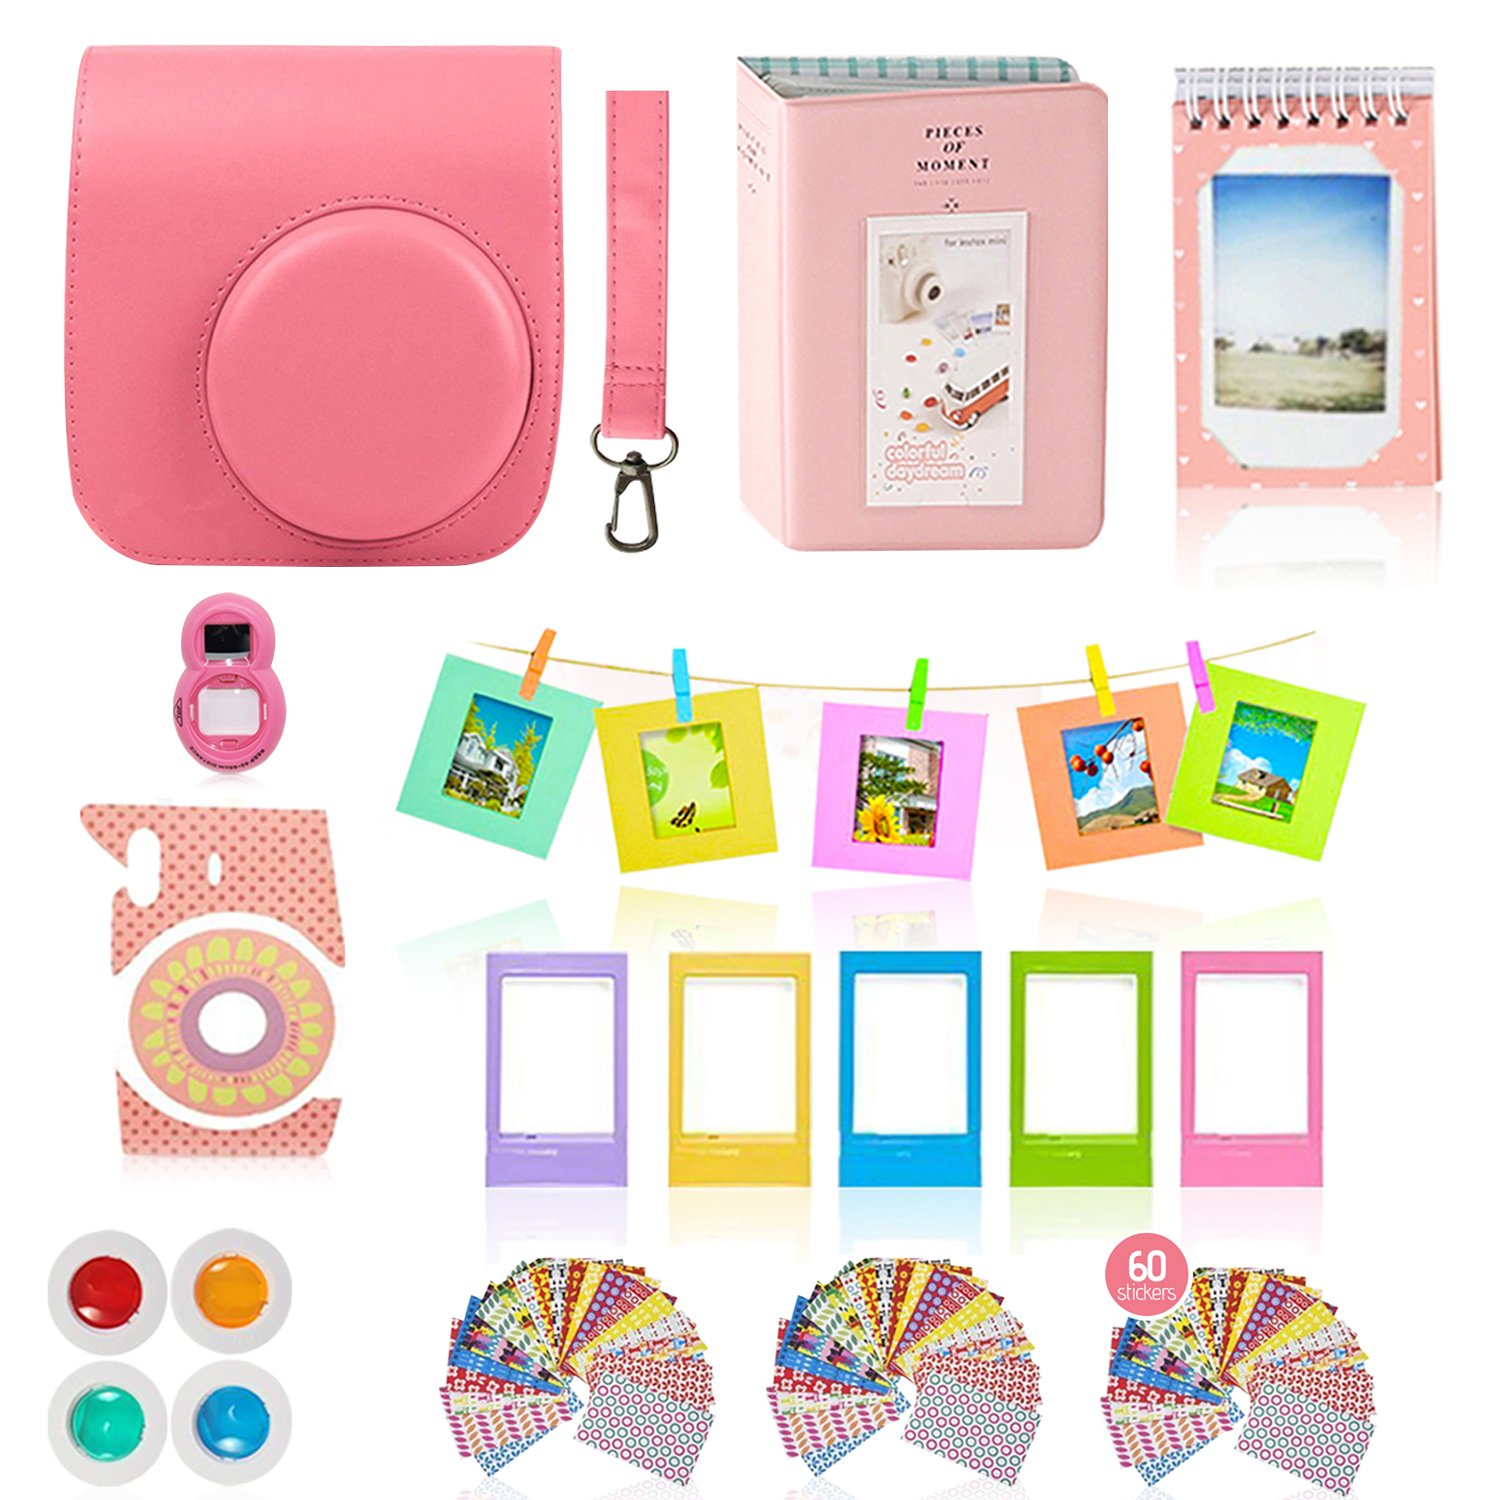 Fujifilm Instax Mini 9 Camera Accessories Bundle, Fuji 11 PC Kit Includes: FLAMINGO PINK Instax Case + Strap, 2 Albums, Filters, Selfie lens, Magnets + Hanging + Creative Frames, 60 stickers, Gift Box by Shutter